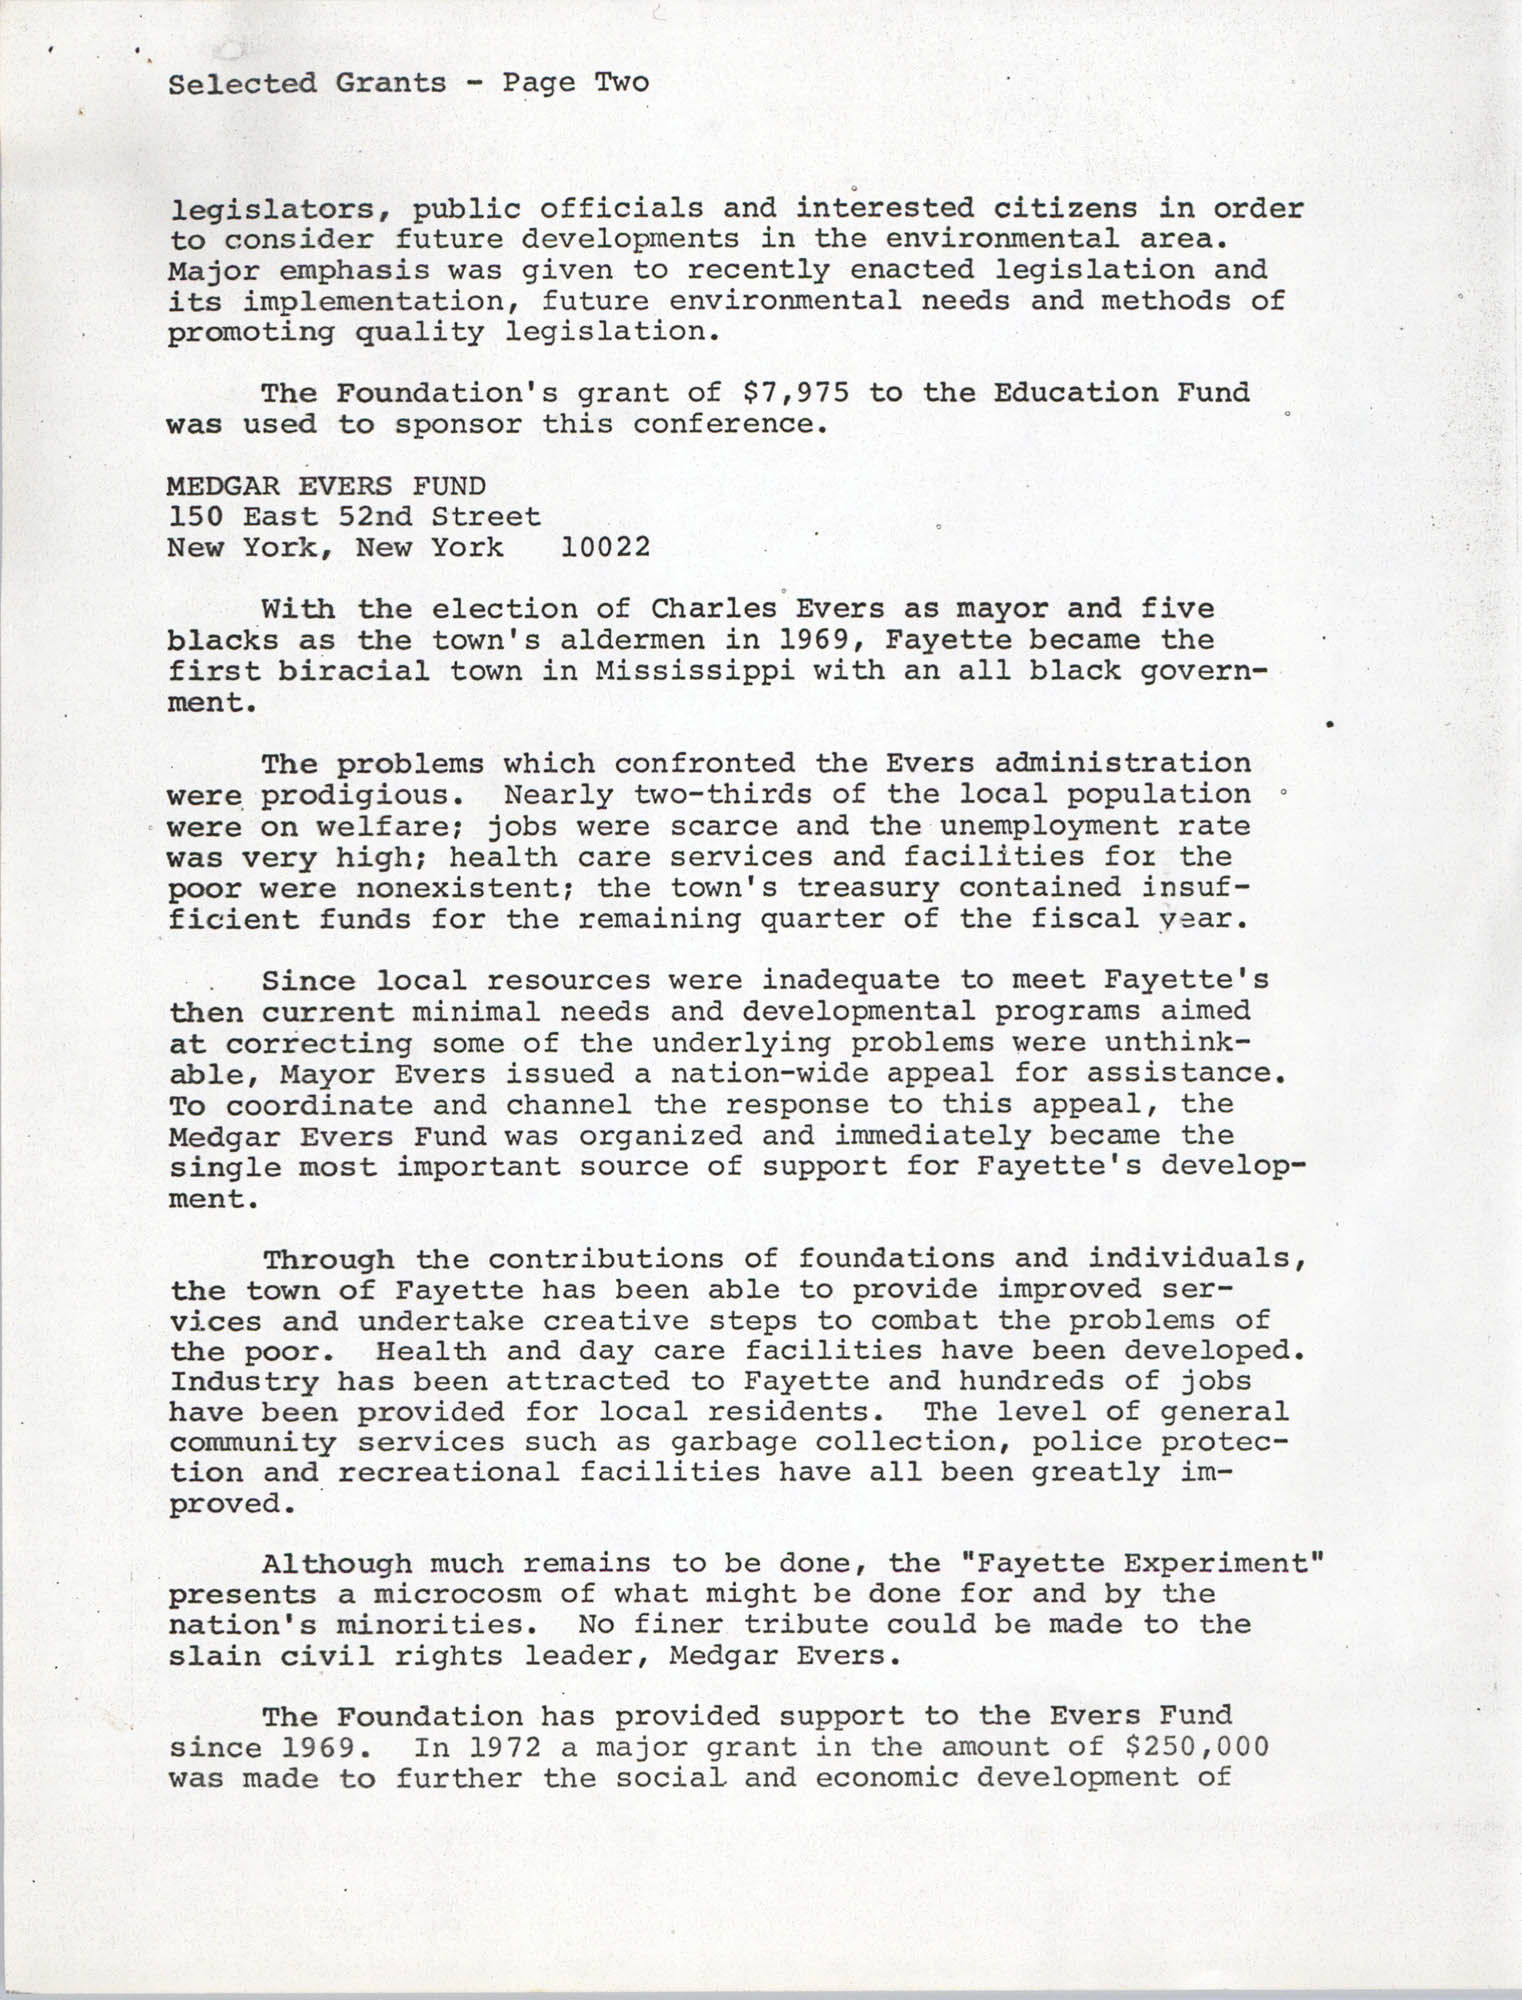 Josephine H. McIntosh Foundation Grant-Making Activities Report for 1972, Selected Grants Page 2